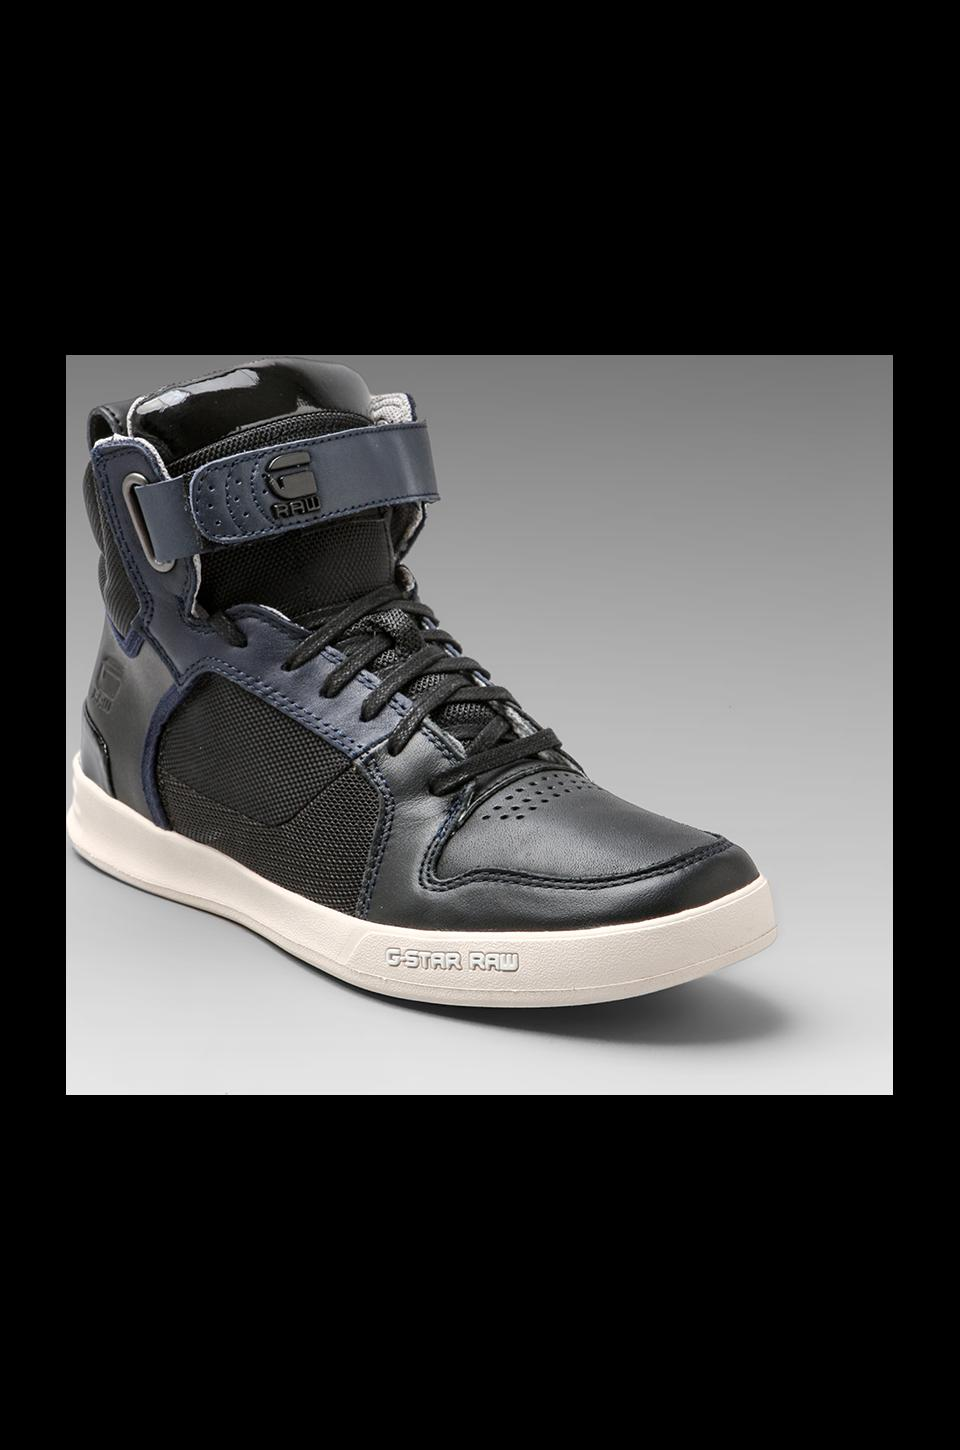 G-Star Yard Bullion in Black/Indigo/Black